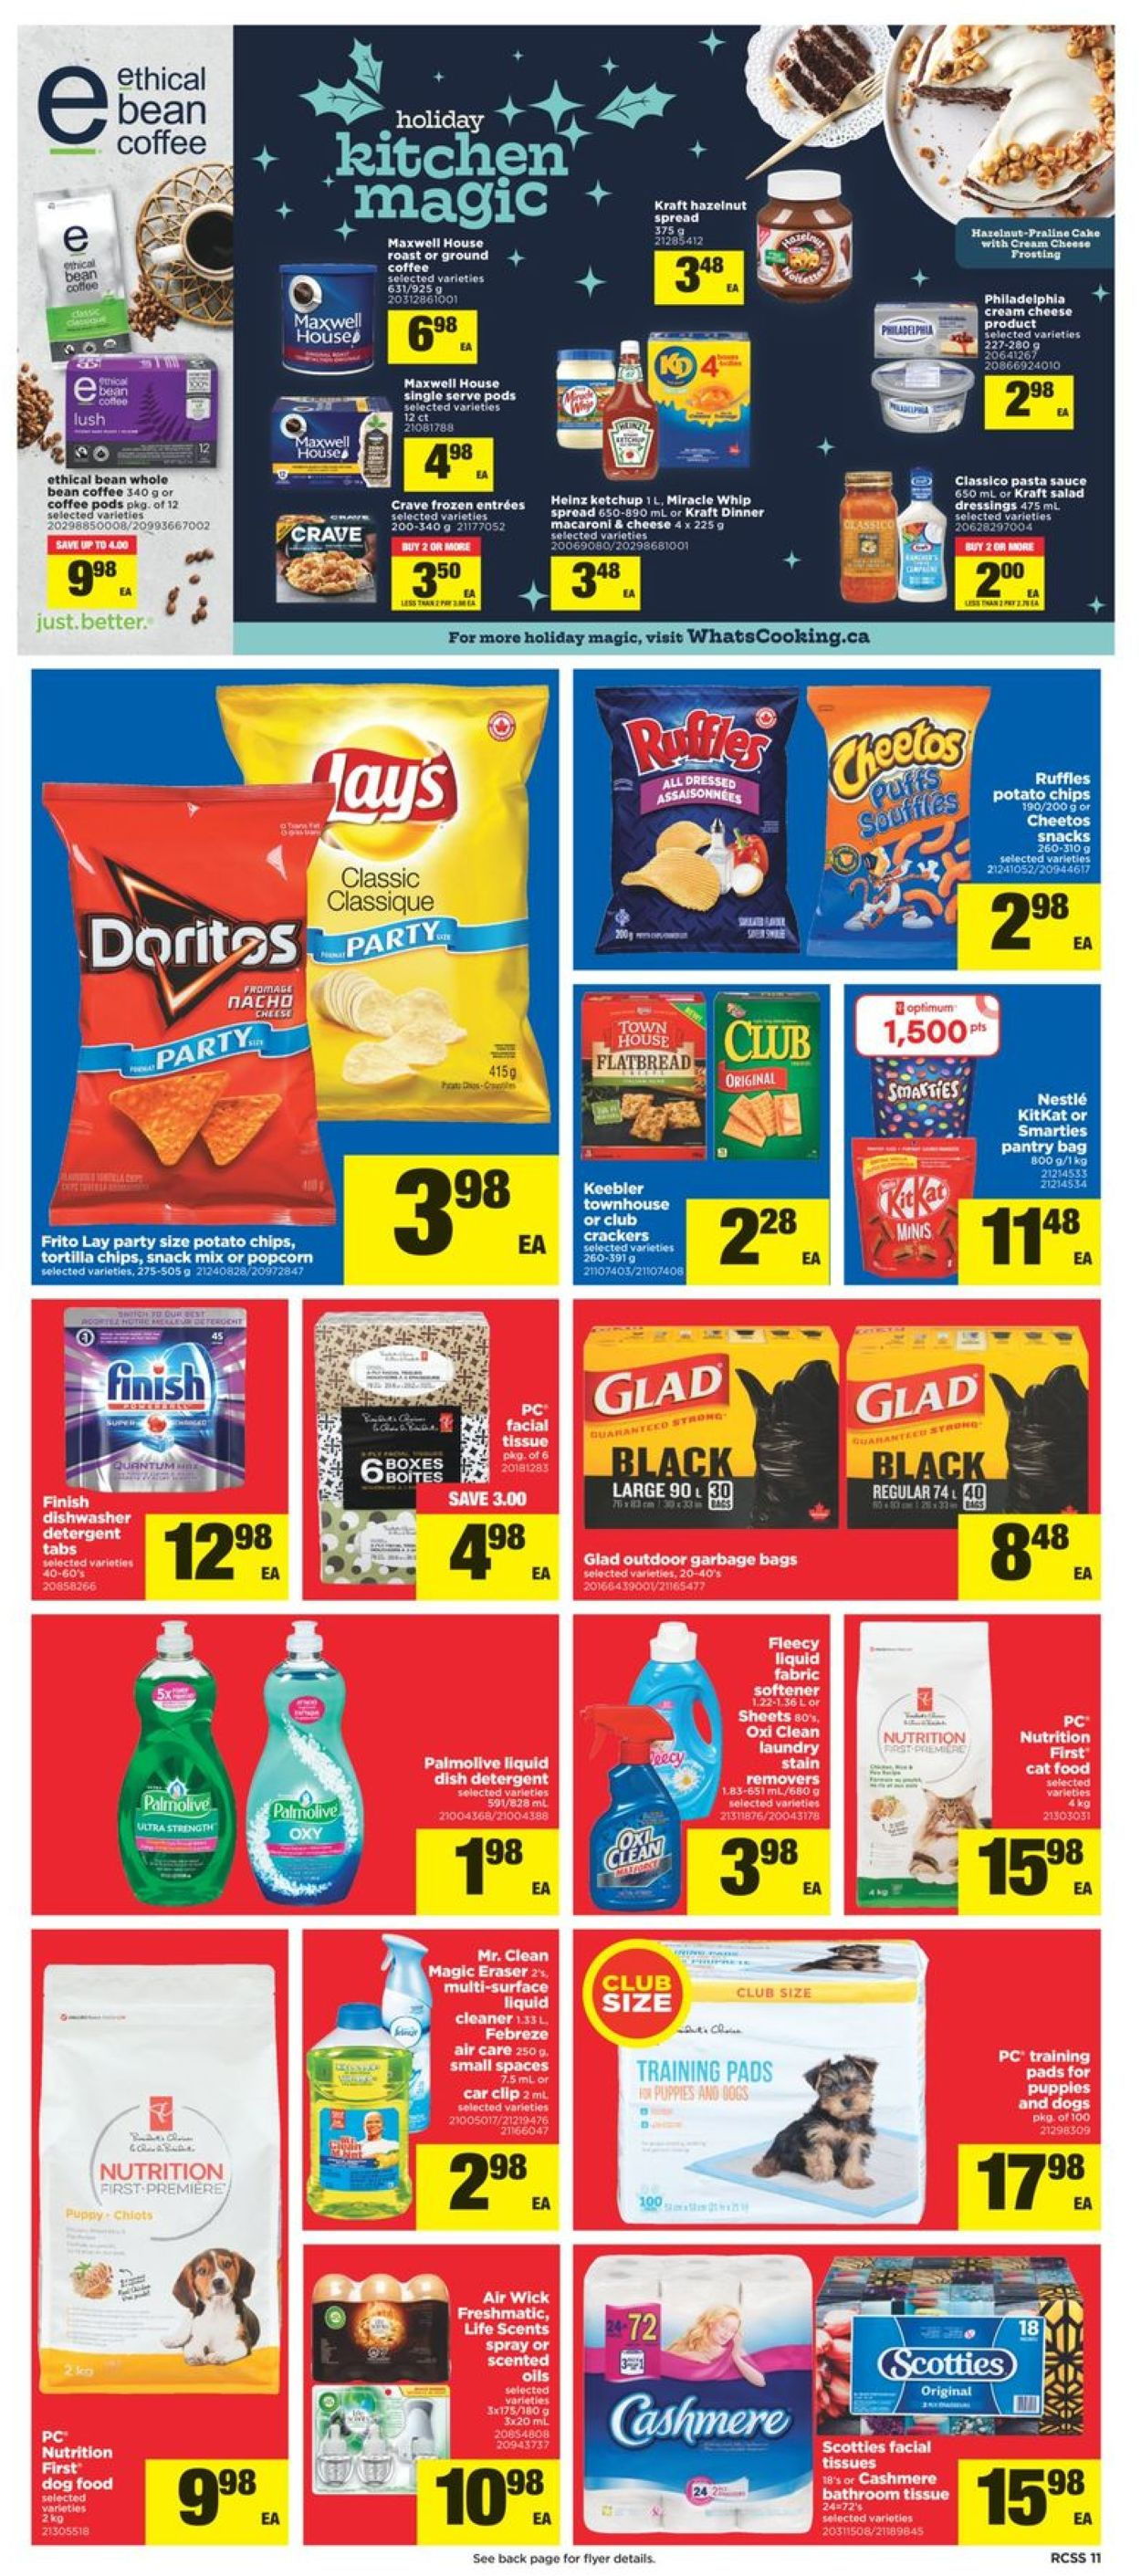 Real Canadian Superstore - Boxing Week 2020 Flyer - 12/24-12/30/2020 (Page 11)